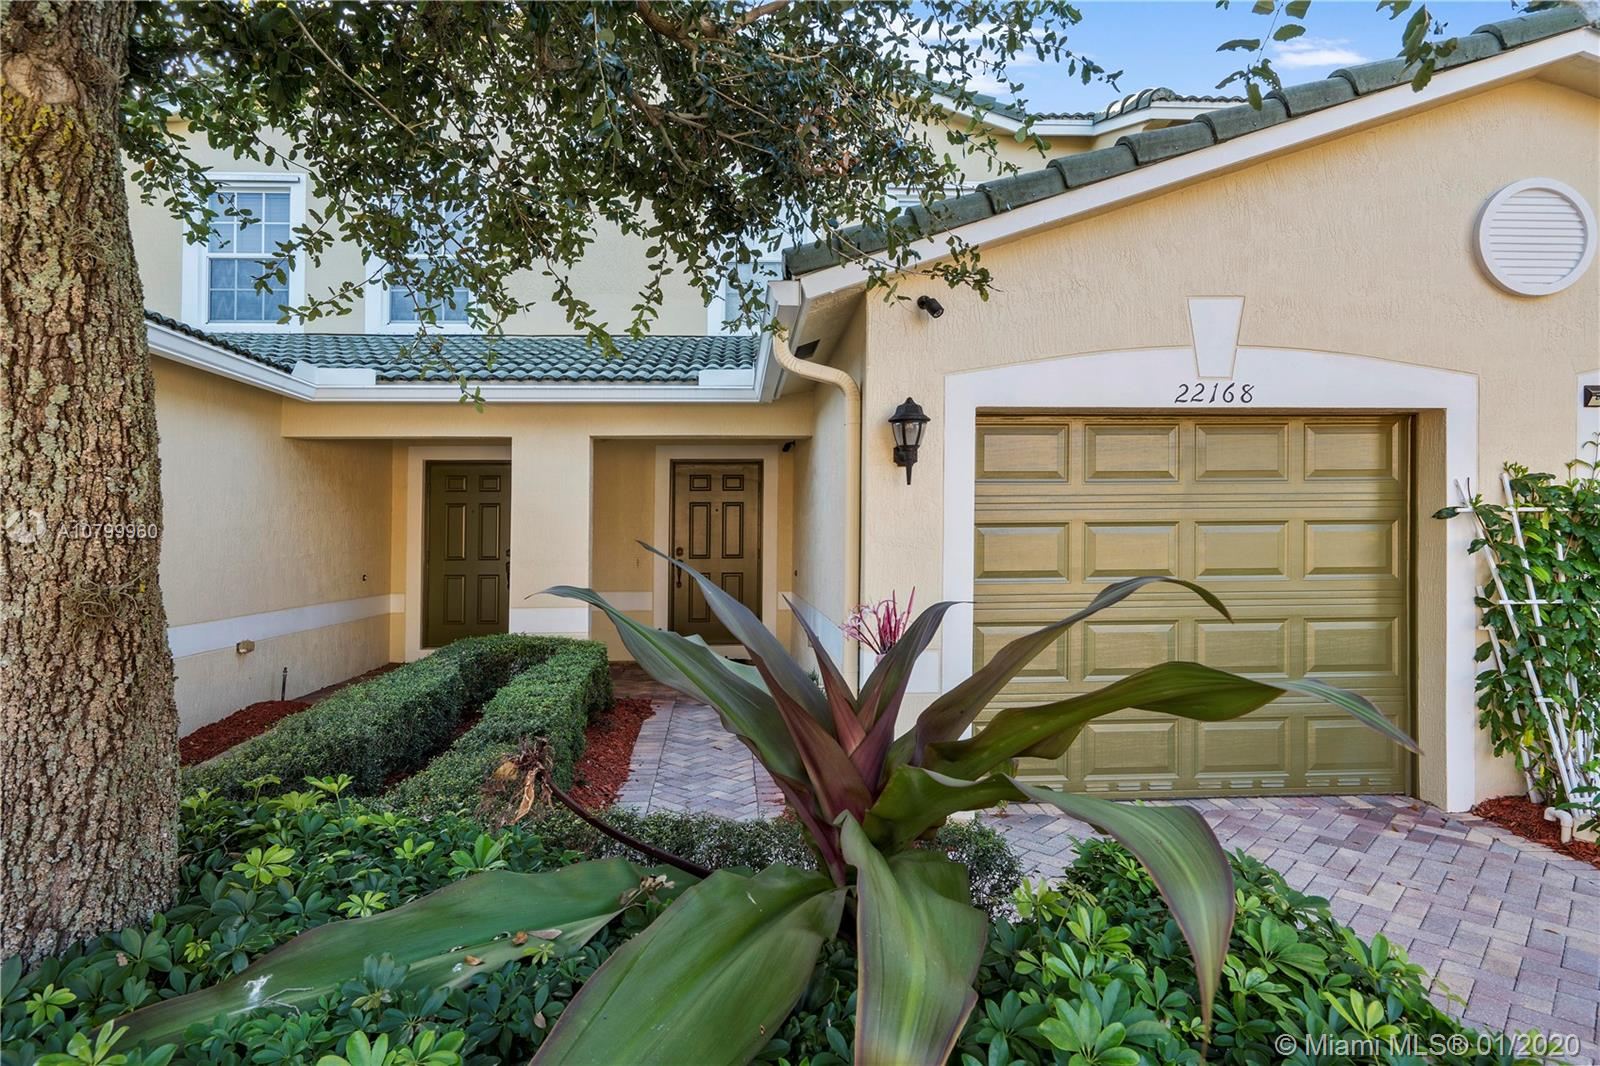 22168 Majestic Woods Way #905, Boca Raton, FL 33428 - Boca Raton, FL real estate listing